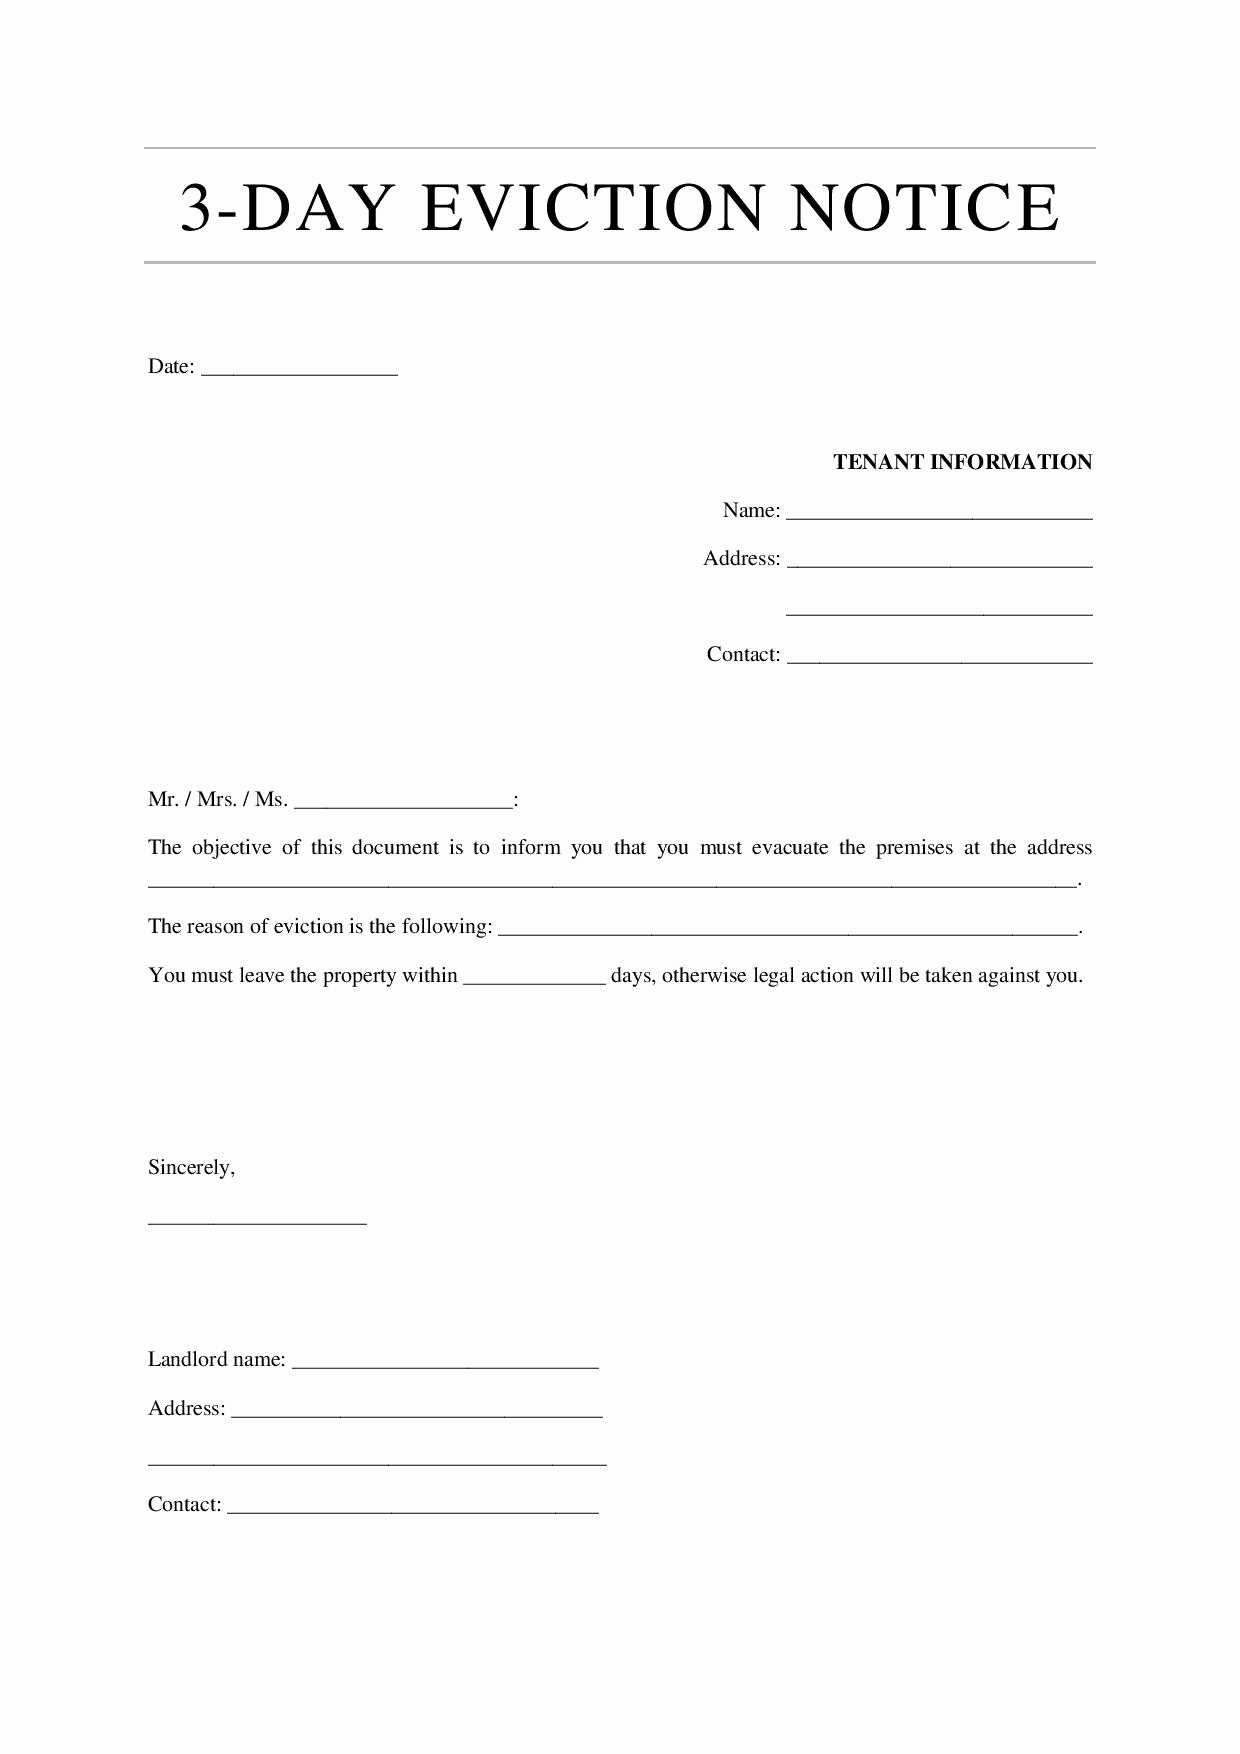 3 Day Notice Template Beautiful 12 Eviction Notice Template Examples